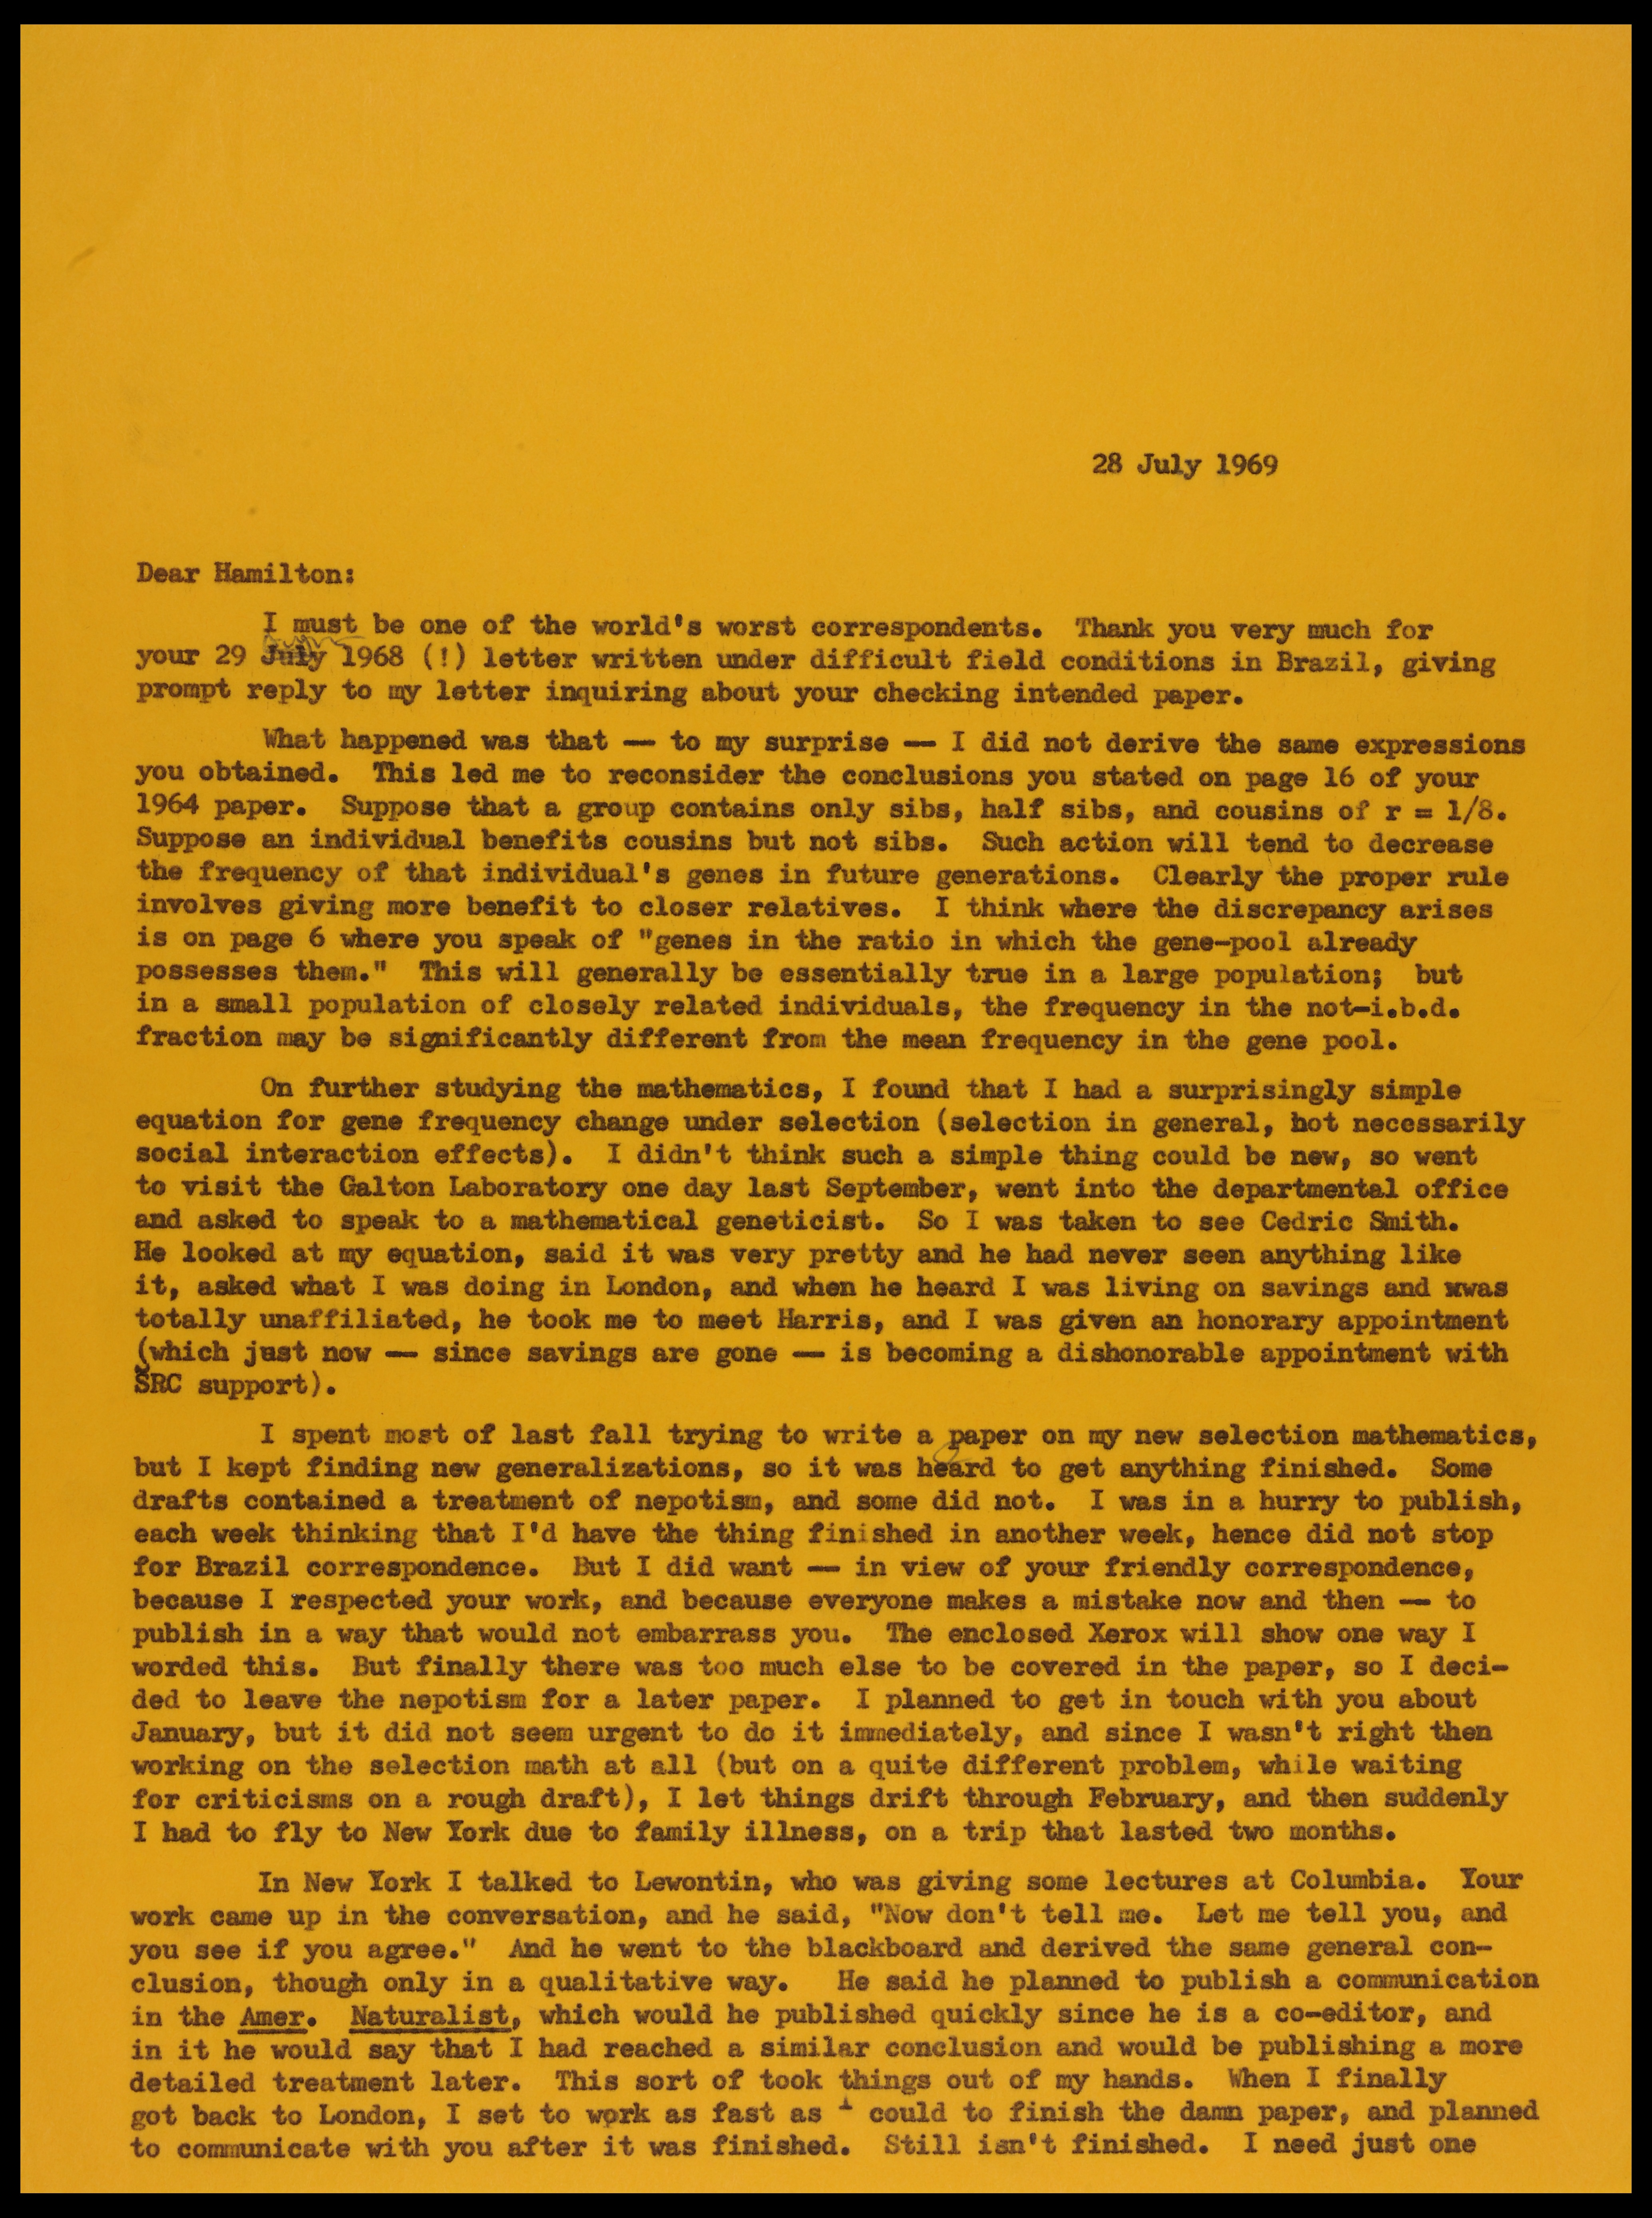 George Price's letter to William Hamilton page one